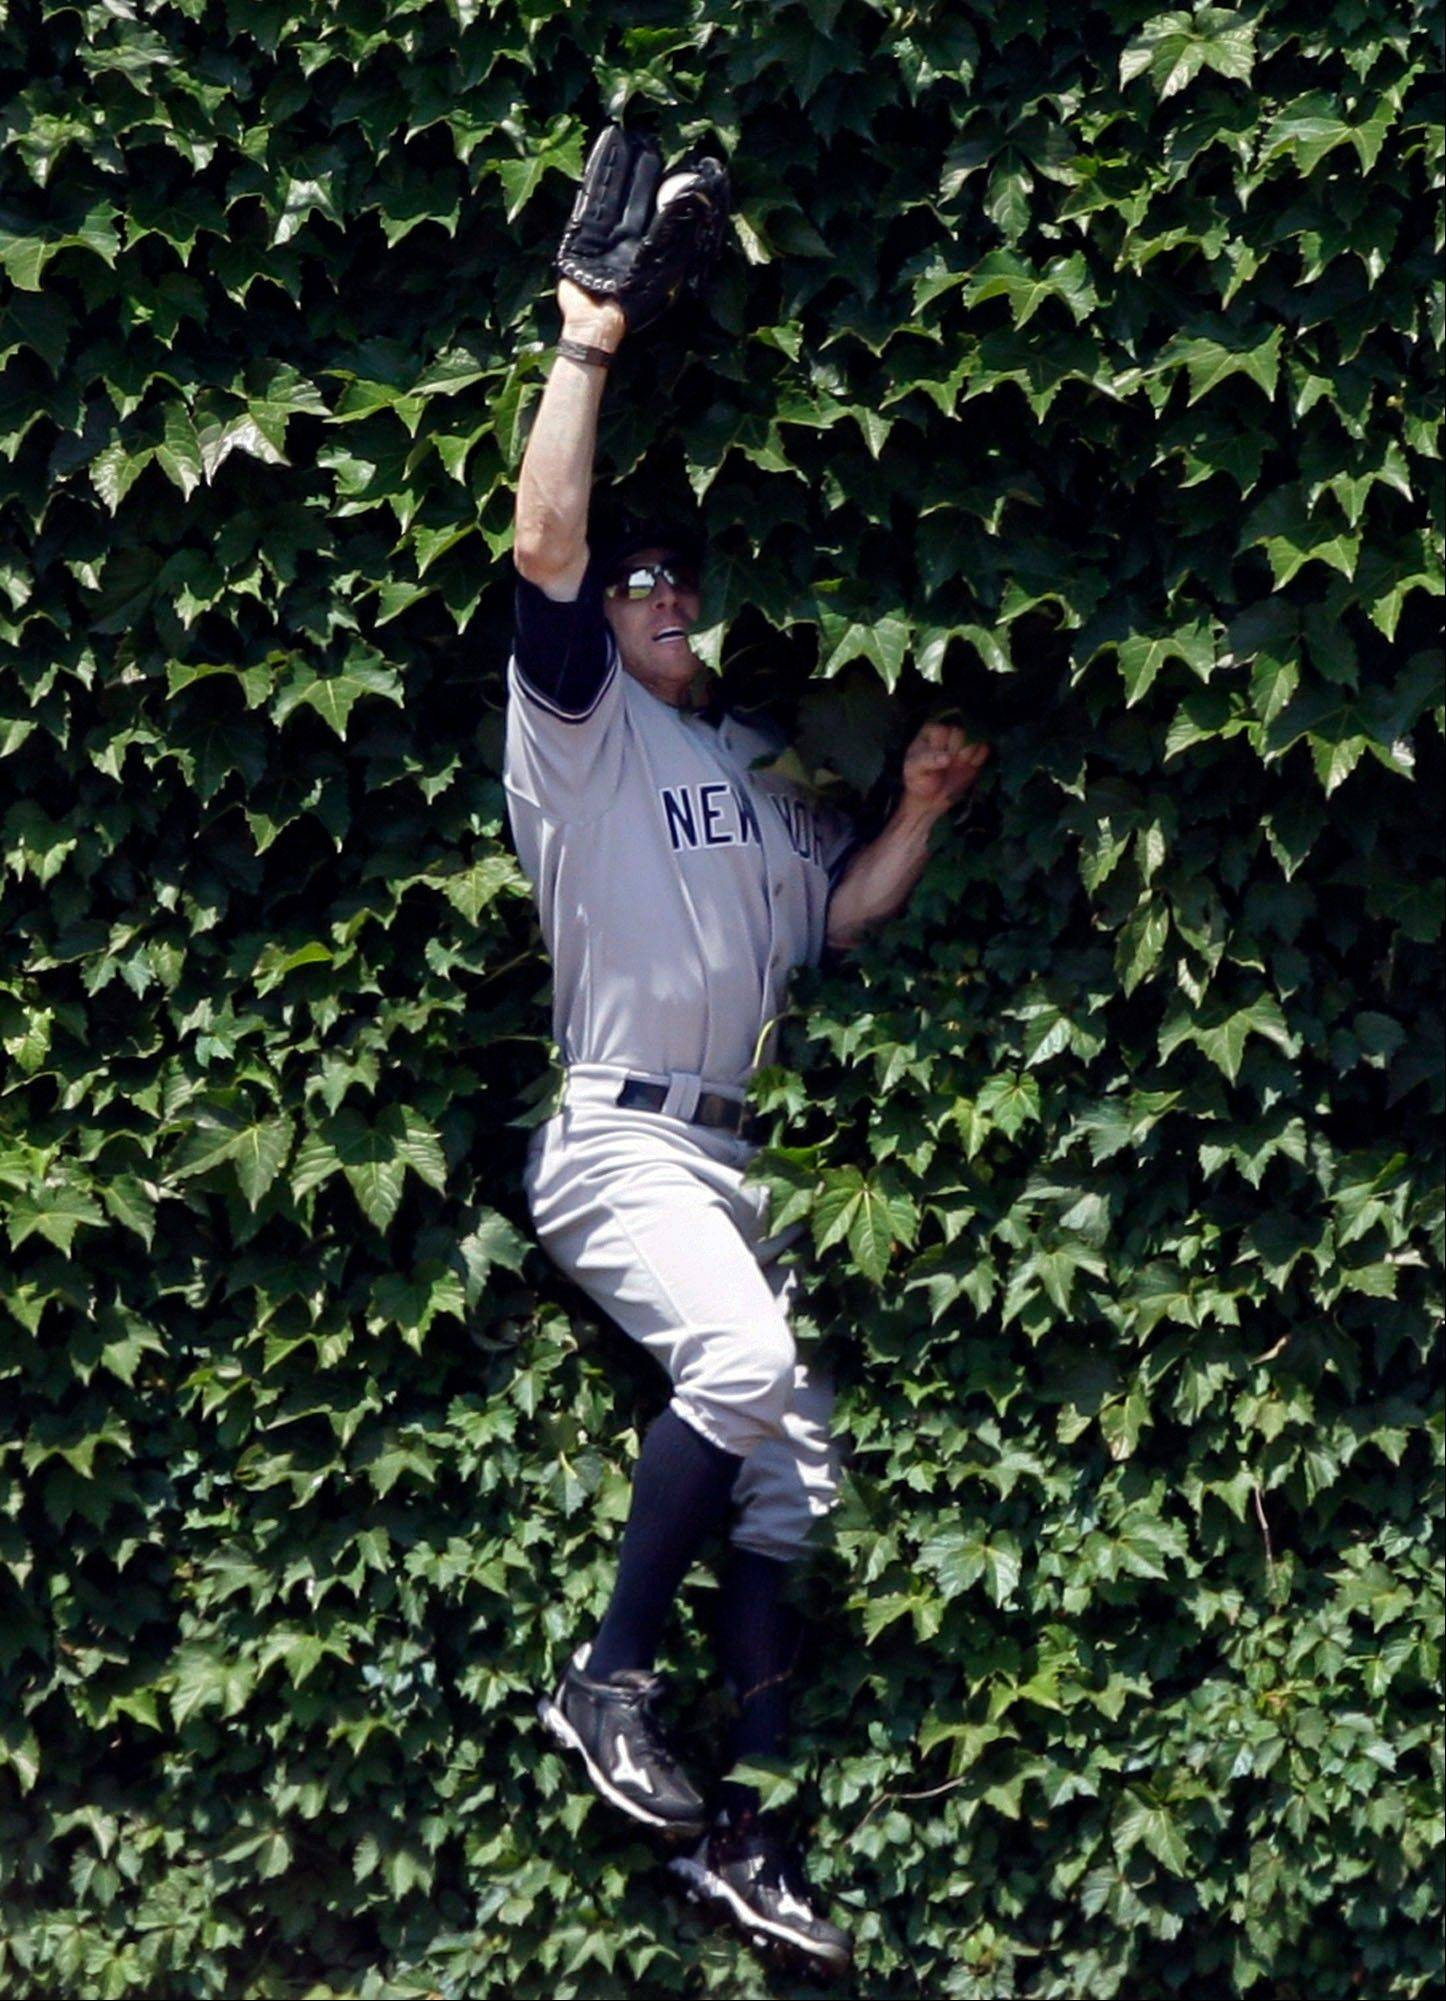 New York Yankees left fielder Brett Gardner makes a leaping catch in the ivy on the outfield wall on a hit by Chicago Cubs' Alfonso Soriano during the first inning of an interleague baseball game in Chicago, Friday, June 17, 2011.